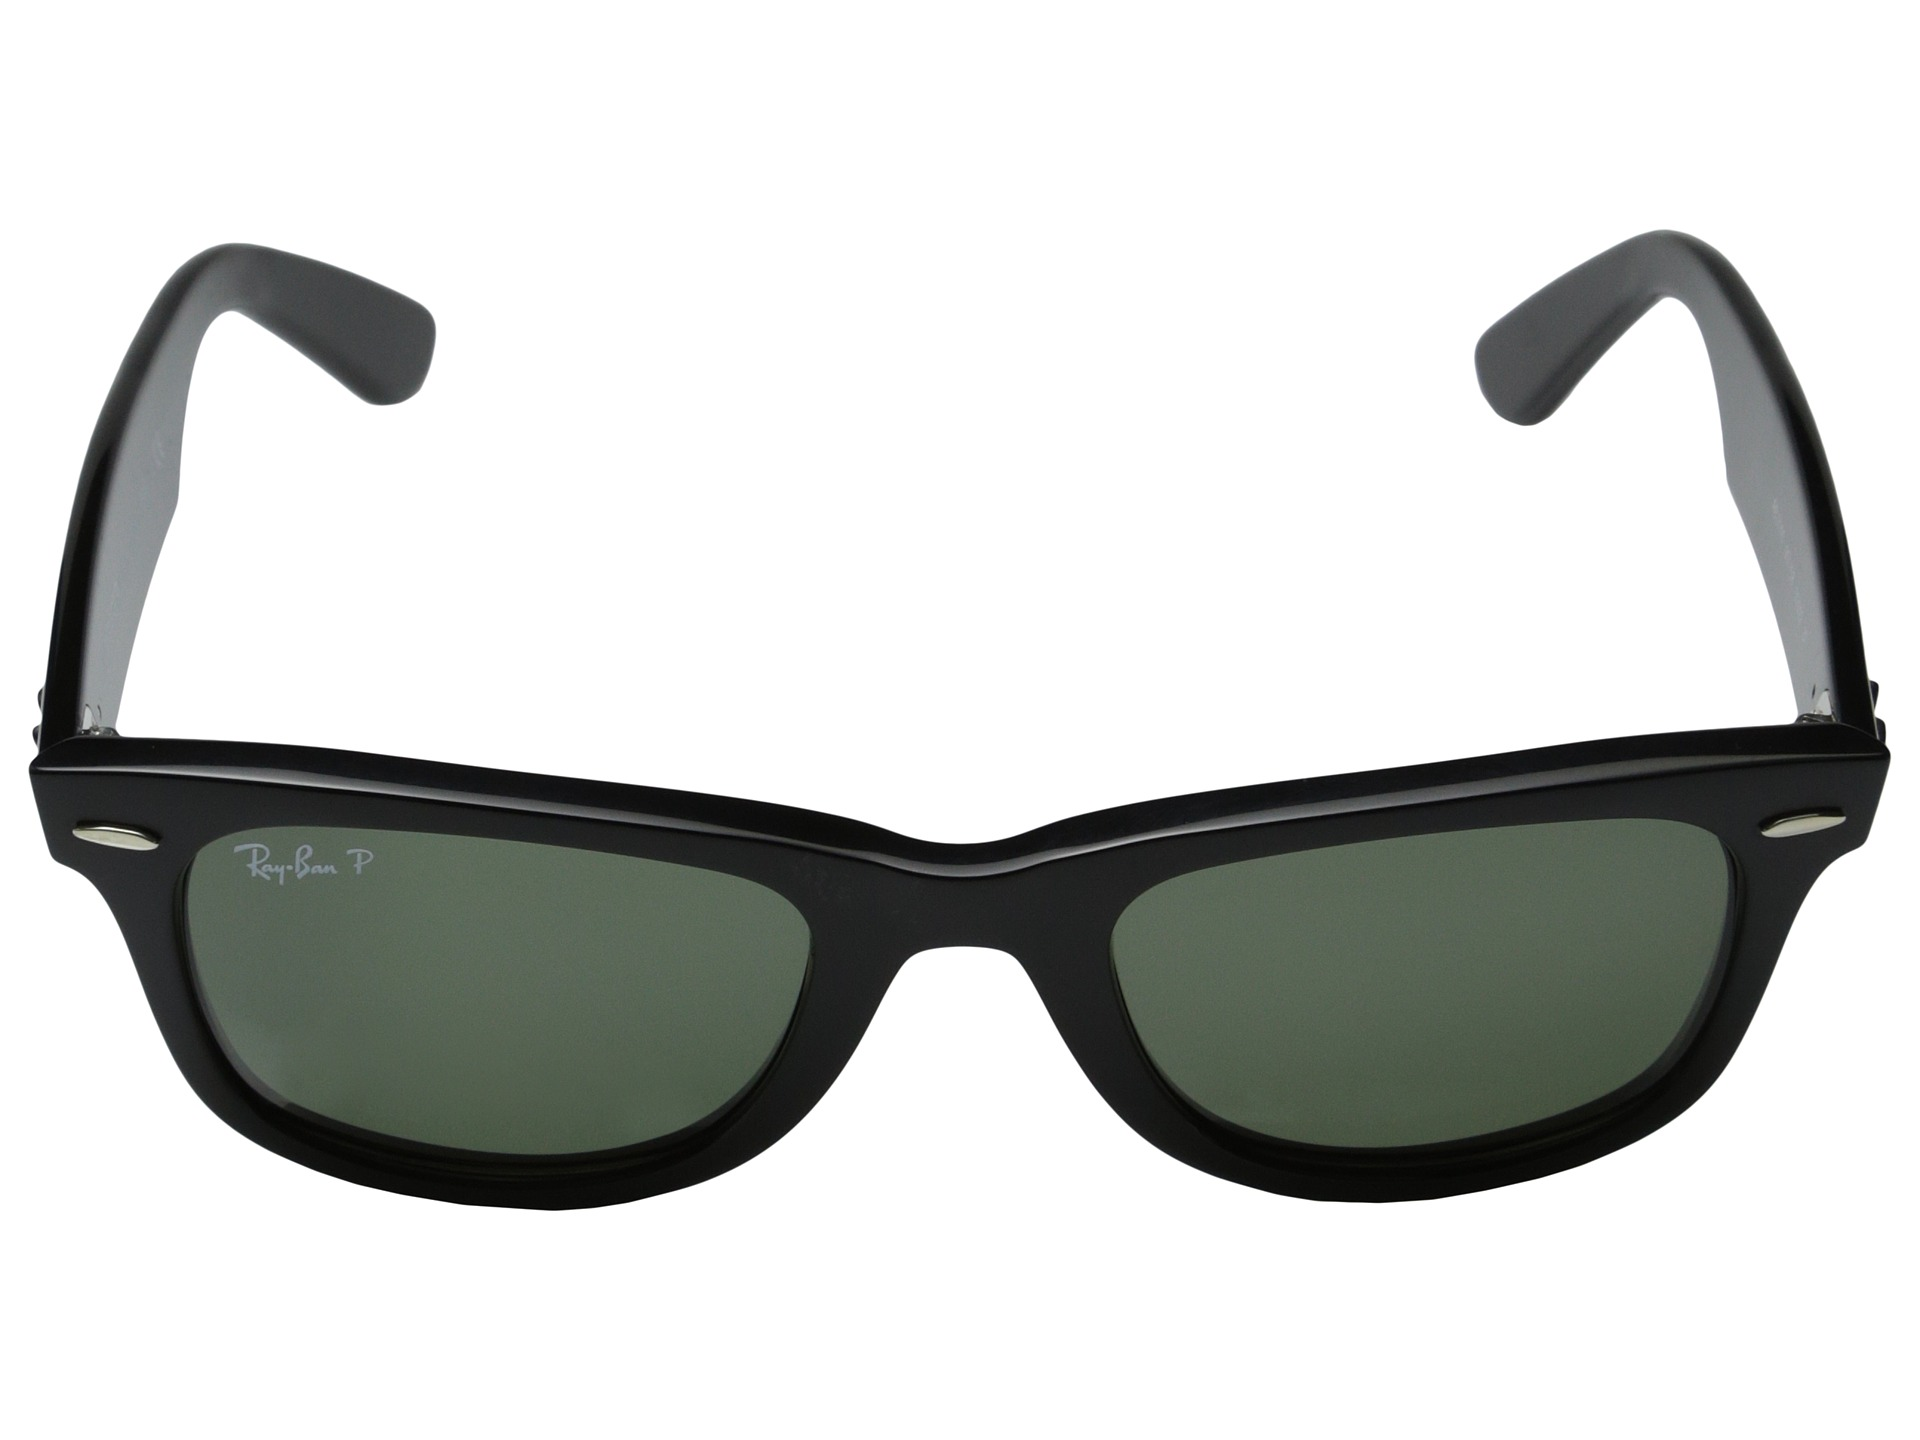 Ray Ban Rb2140 Original Wayfarer  ray ban rb2140 original wayfarer polarized 50 zappos com free